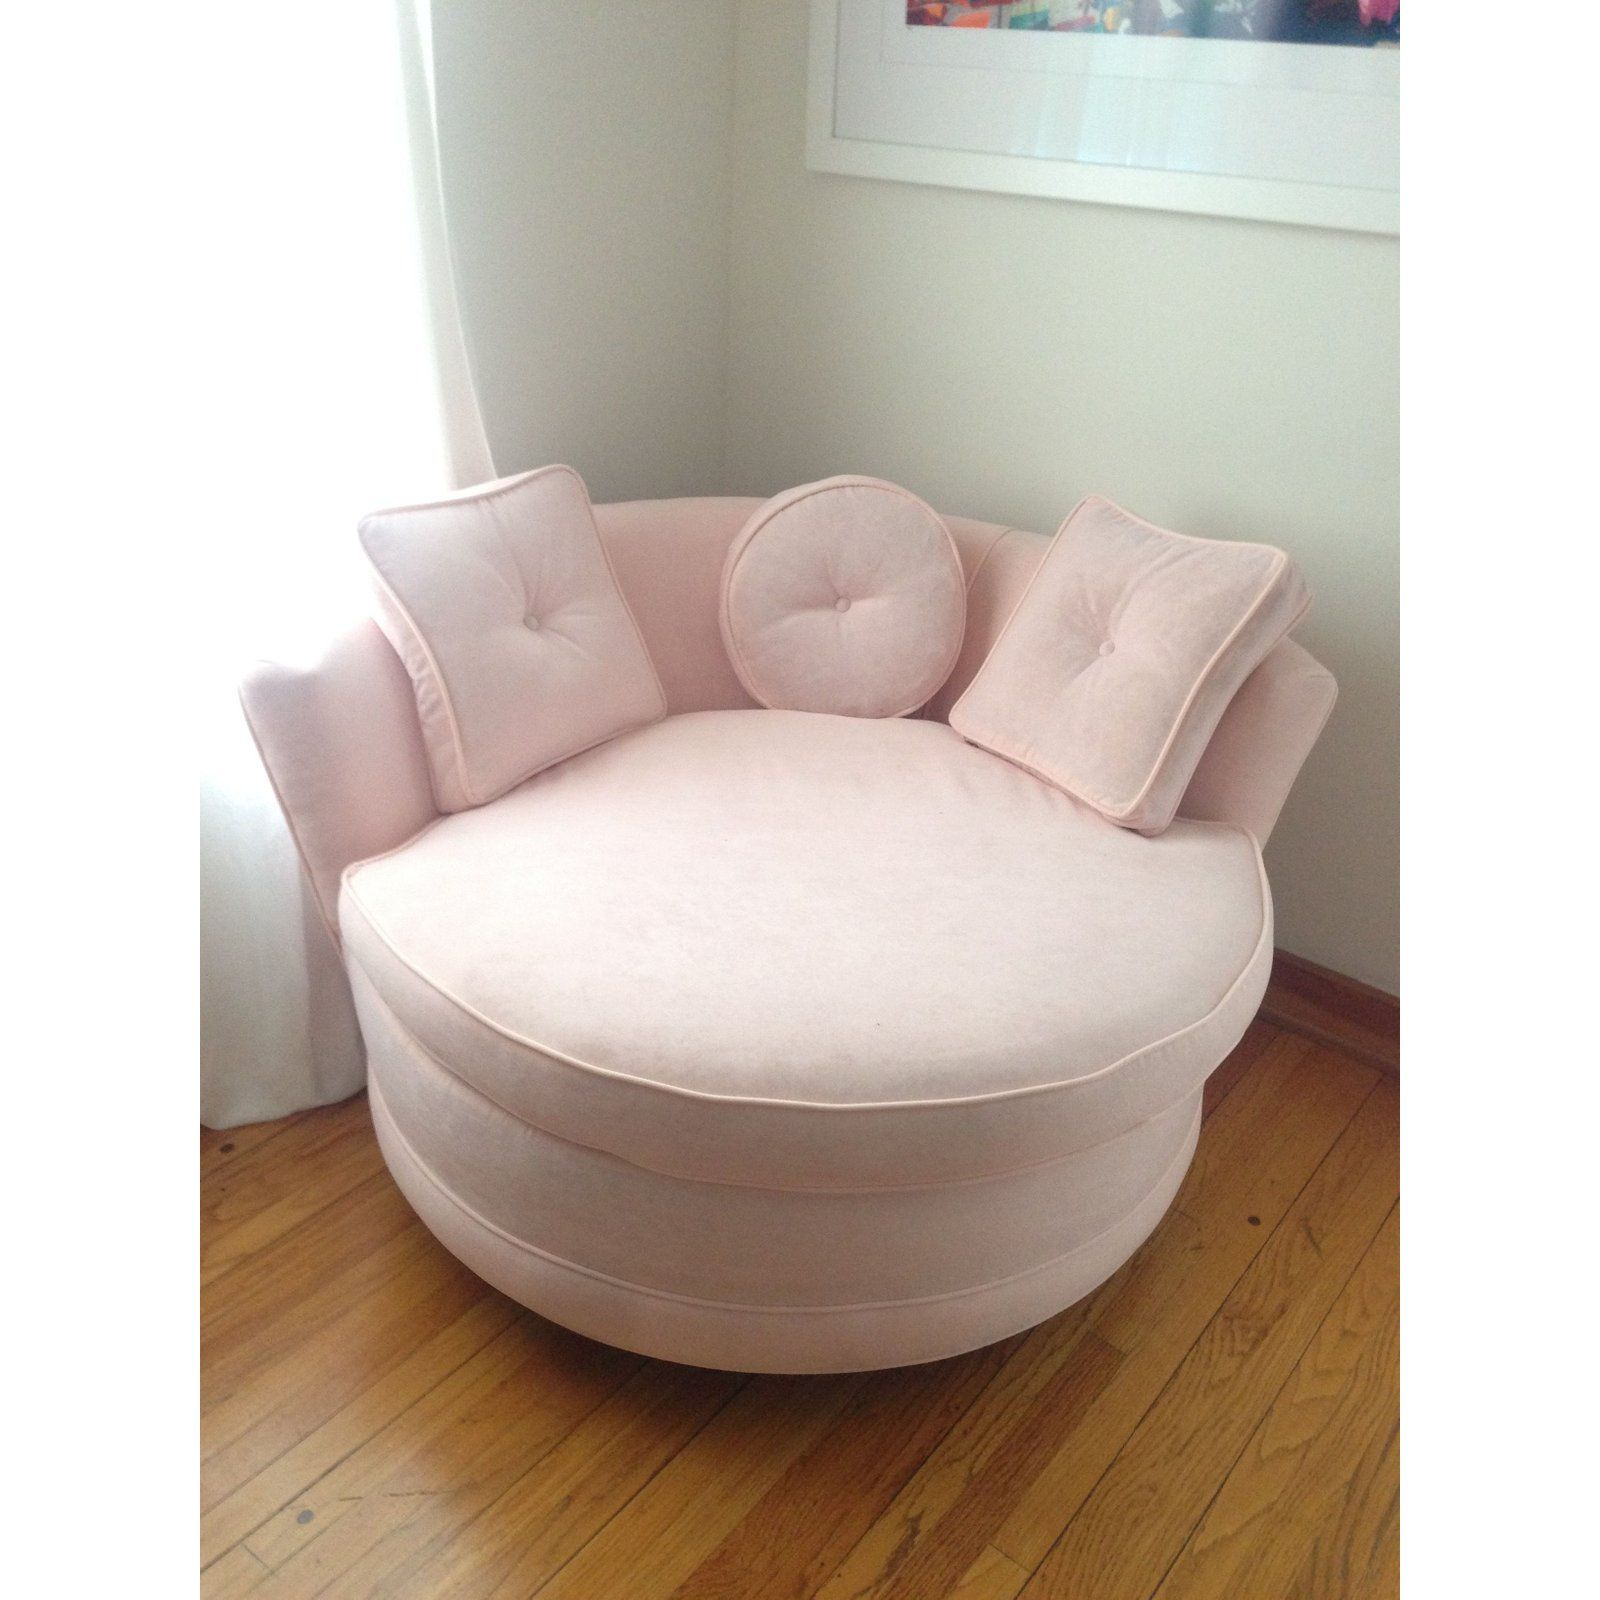 Round Loveseat In Pink Velvet For Sale In Los Angeles Image 6 Of 7 Love Seat Round Sofa Chair Pink Velvet